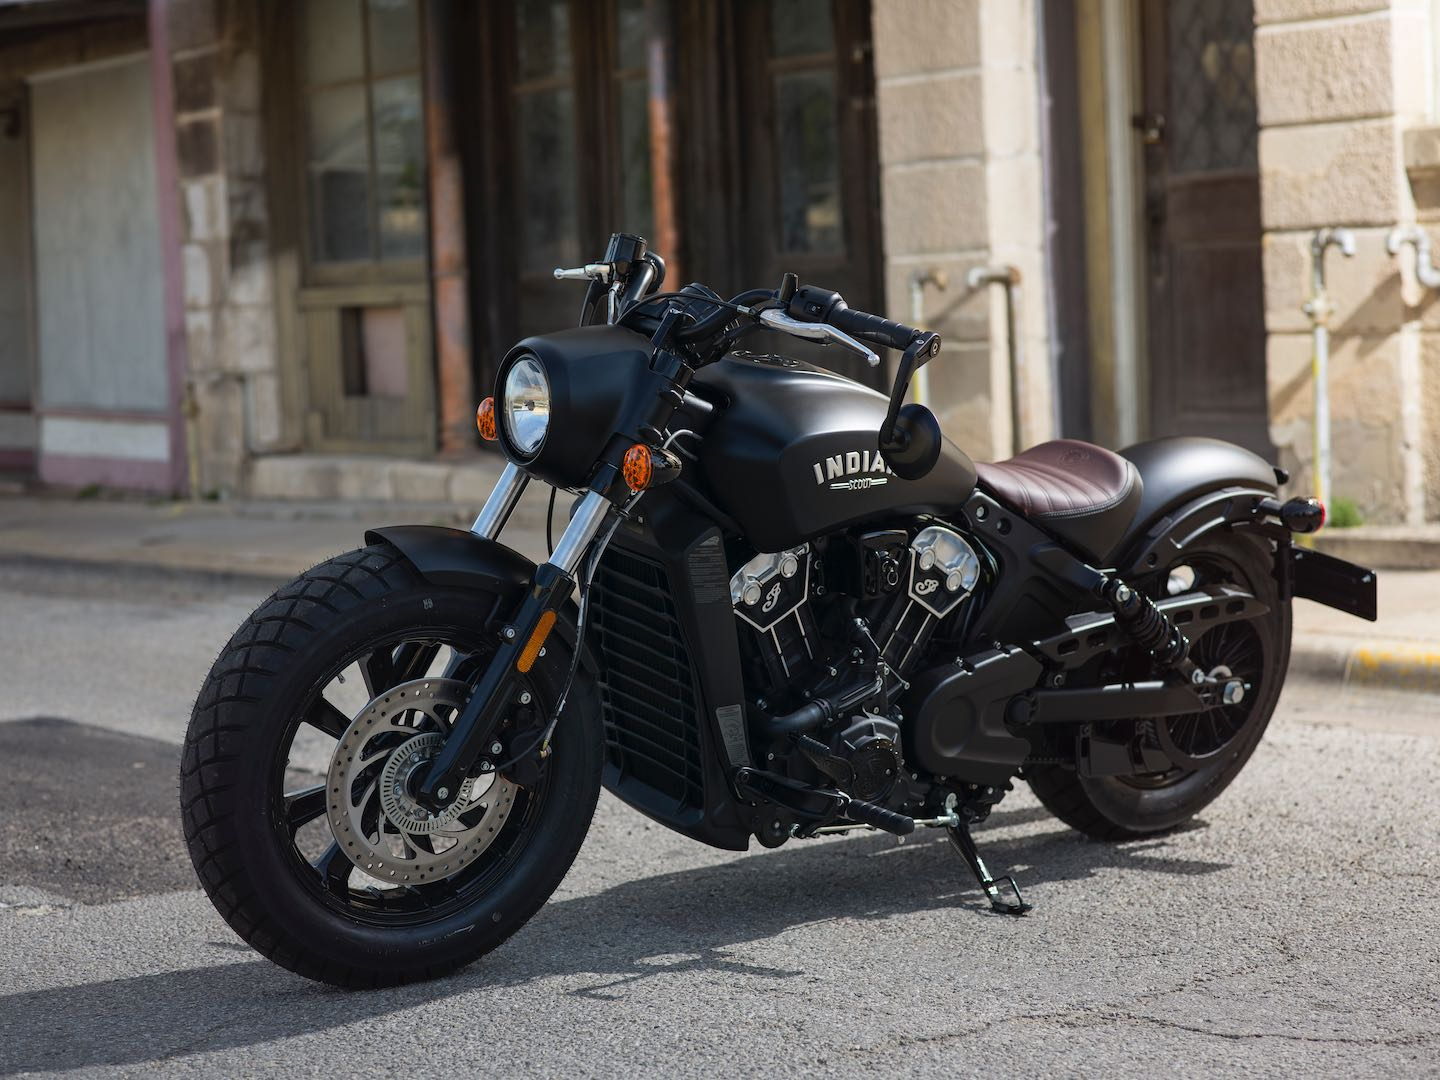 2018 Indian Scout Bobber Unveiled  8 Fast Facts